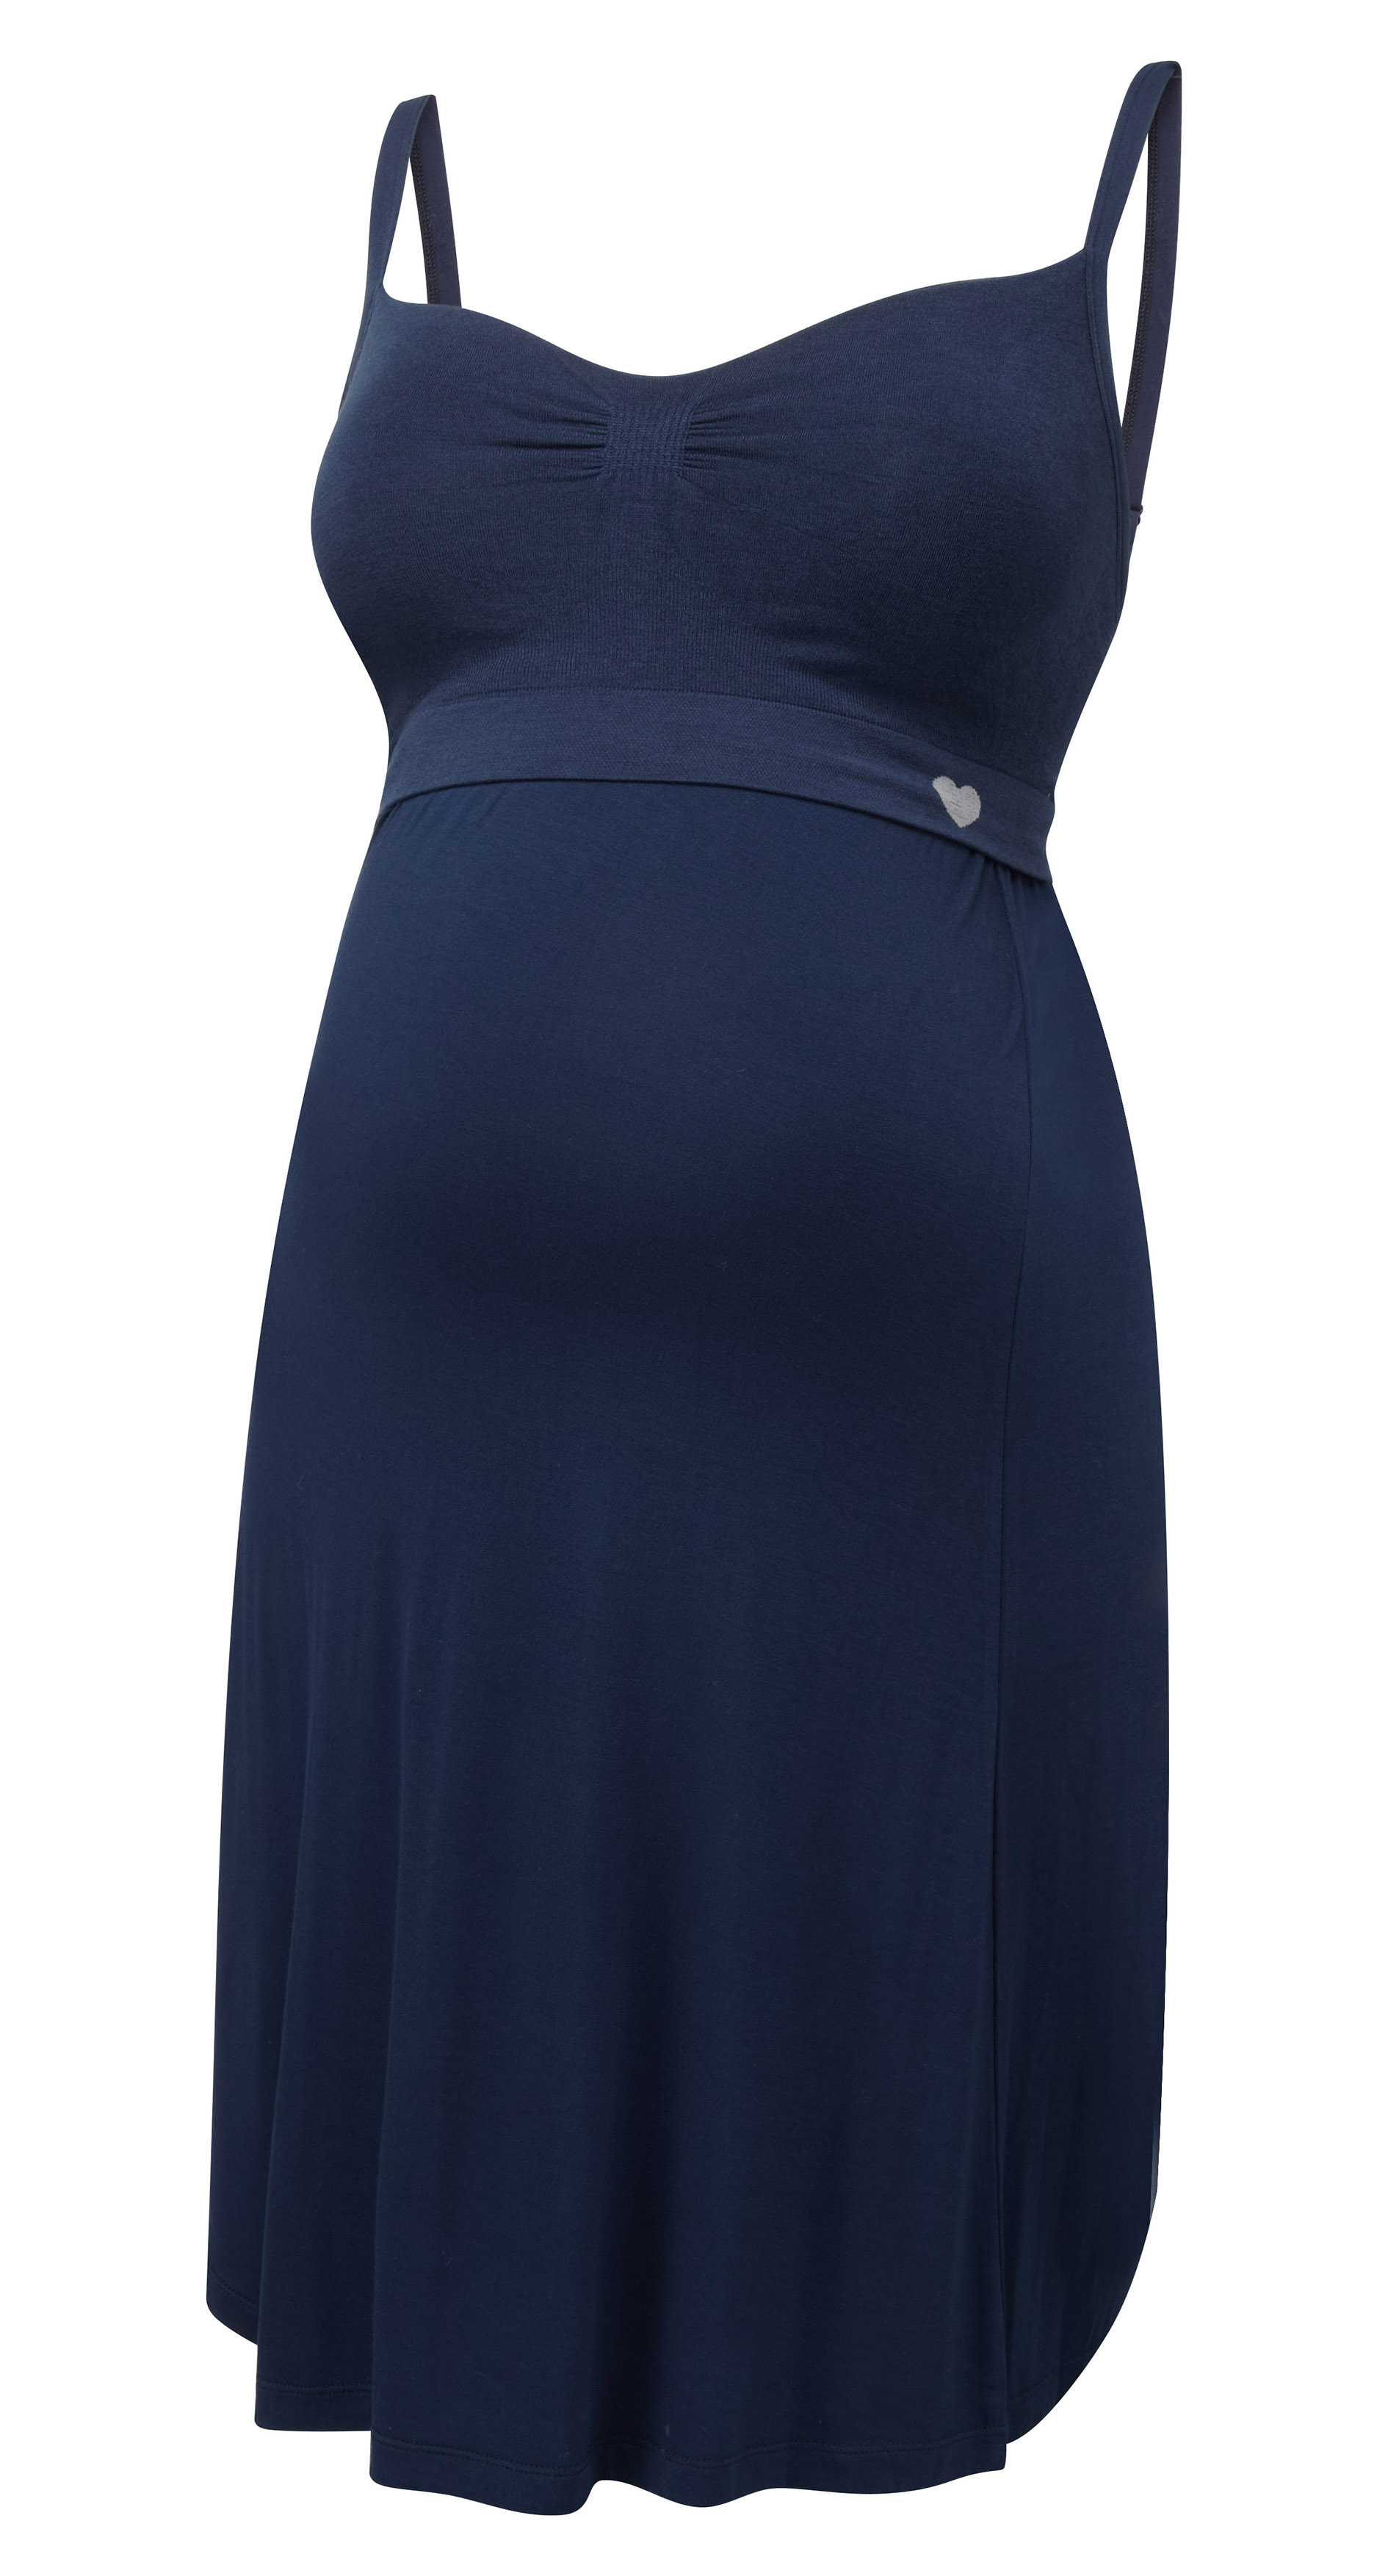 027-N40-06 | seamless nightie | navy